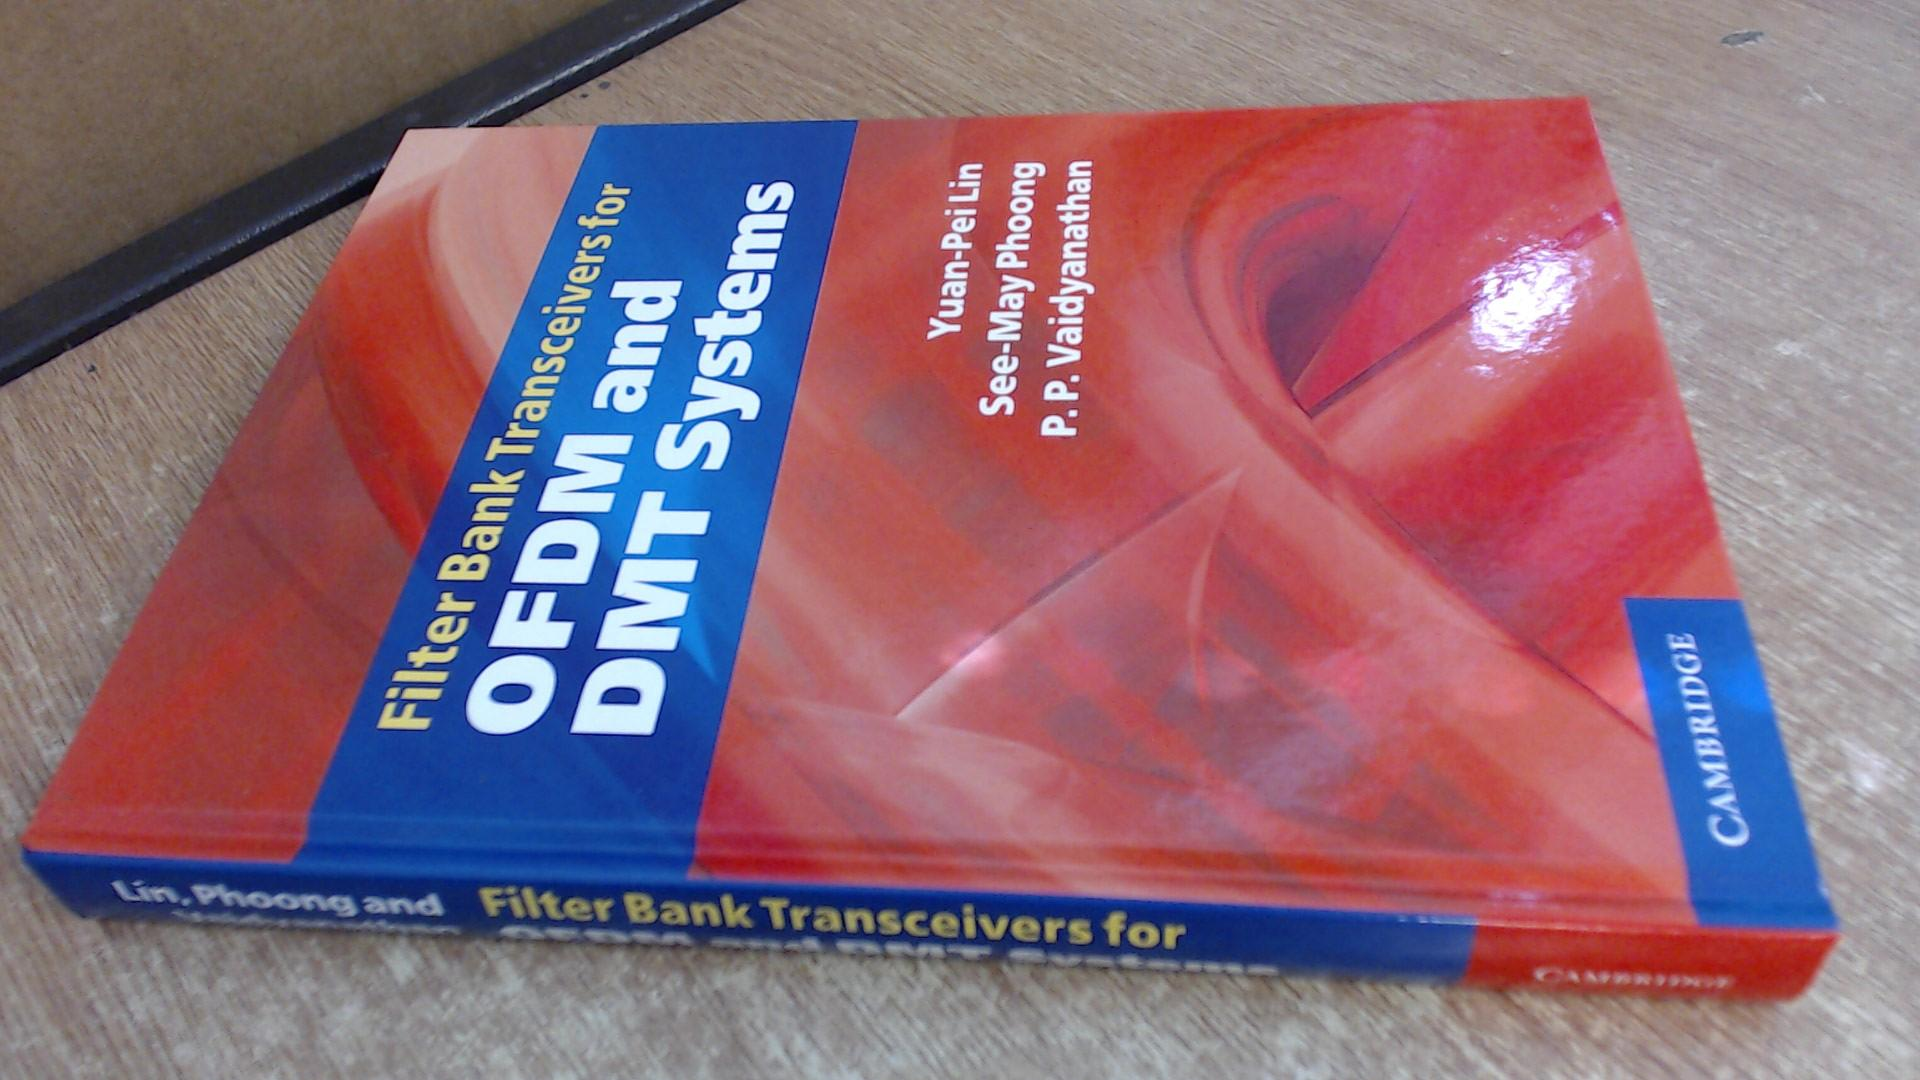 Filter Bank Transceivers For Ofdm And Dmt Systems Various Editors As New Hardcover VG unused book without dust jacket. Boards are clean. Book has clean and bright contents throughout